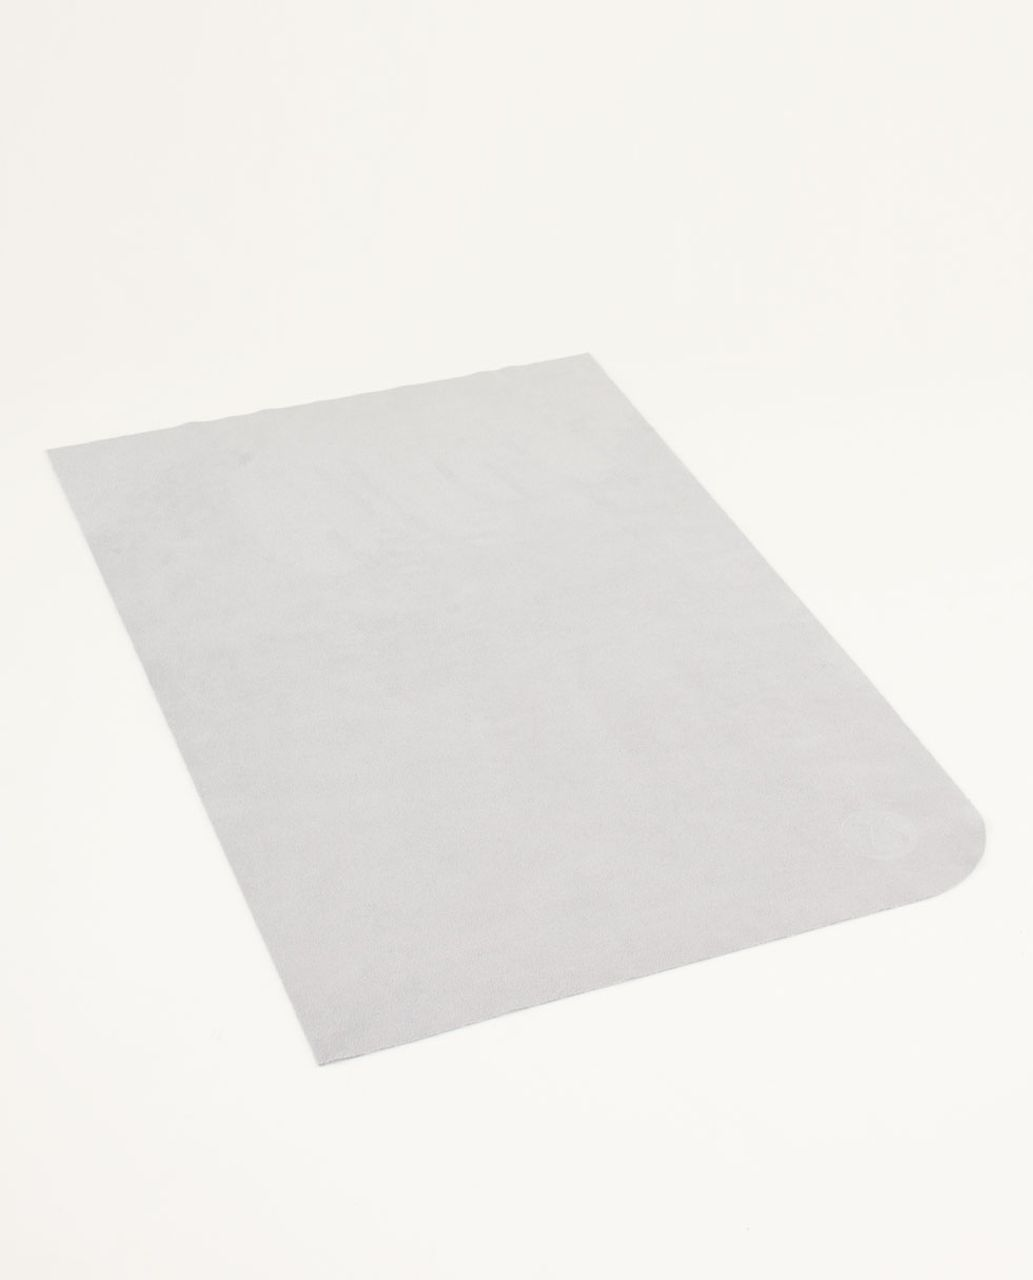 Lululemon The (Small) Towel - Silver Slate